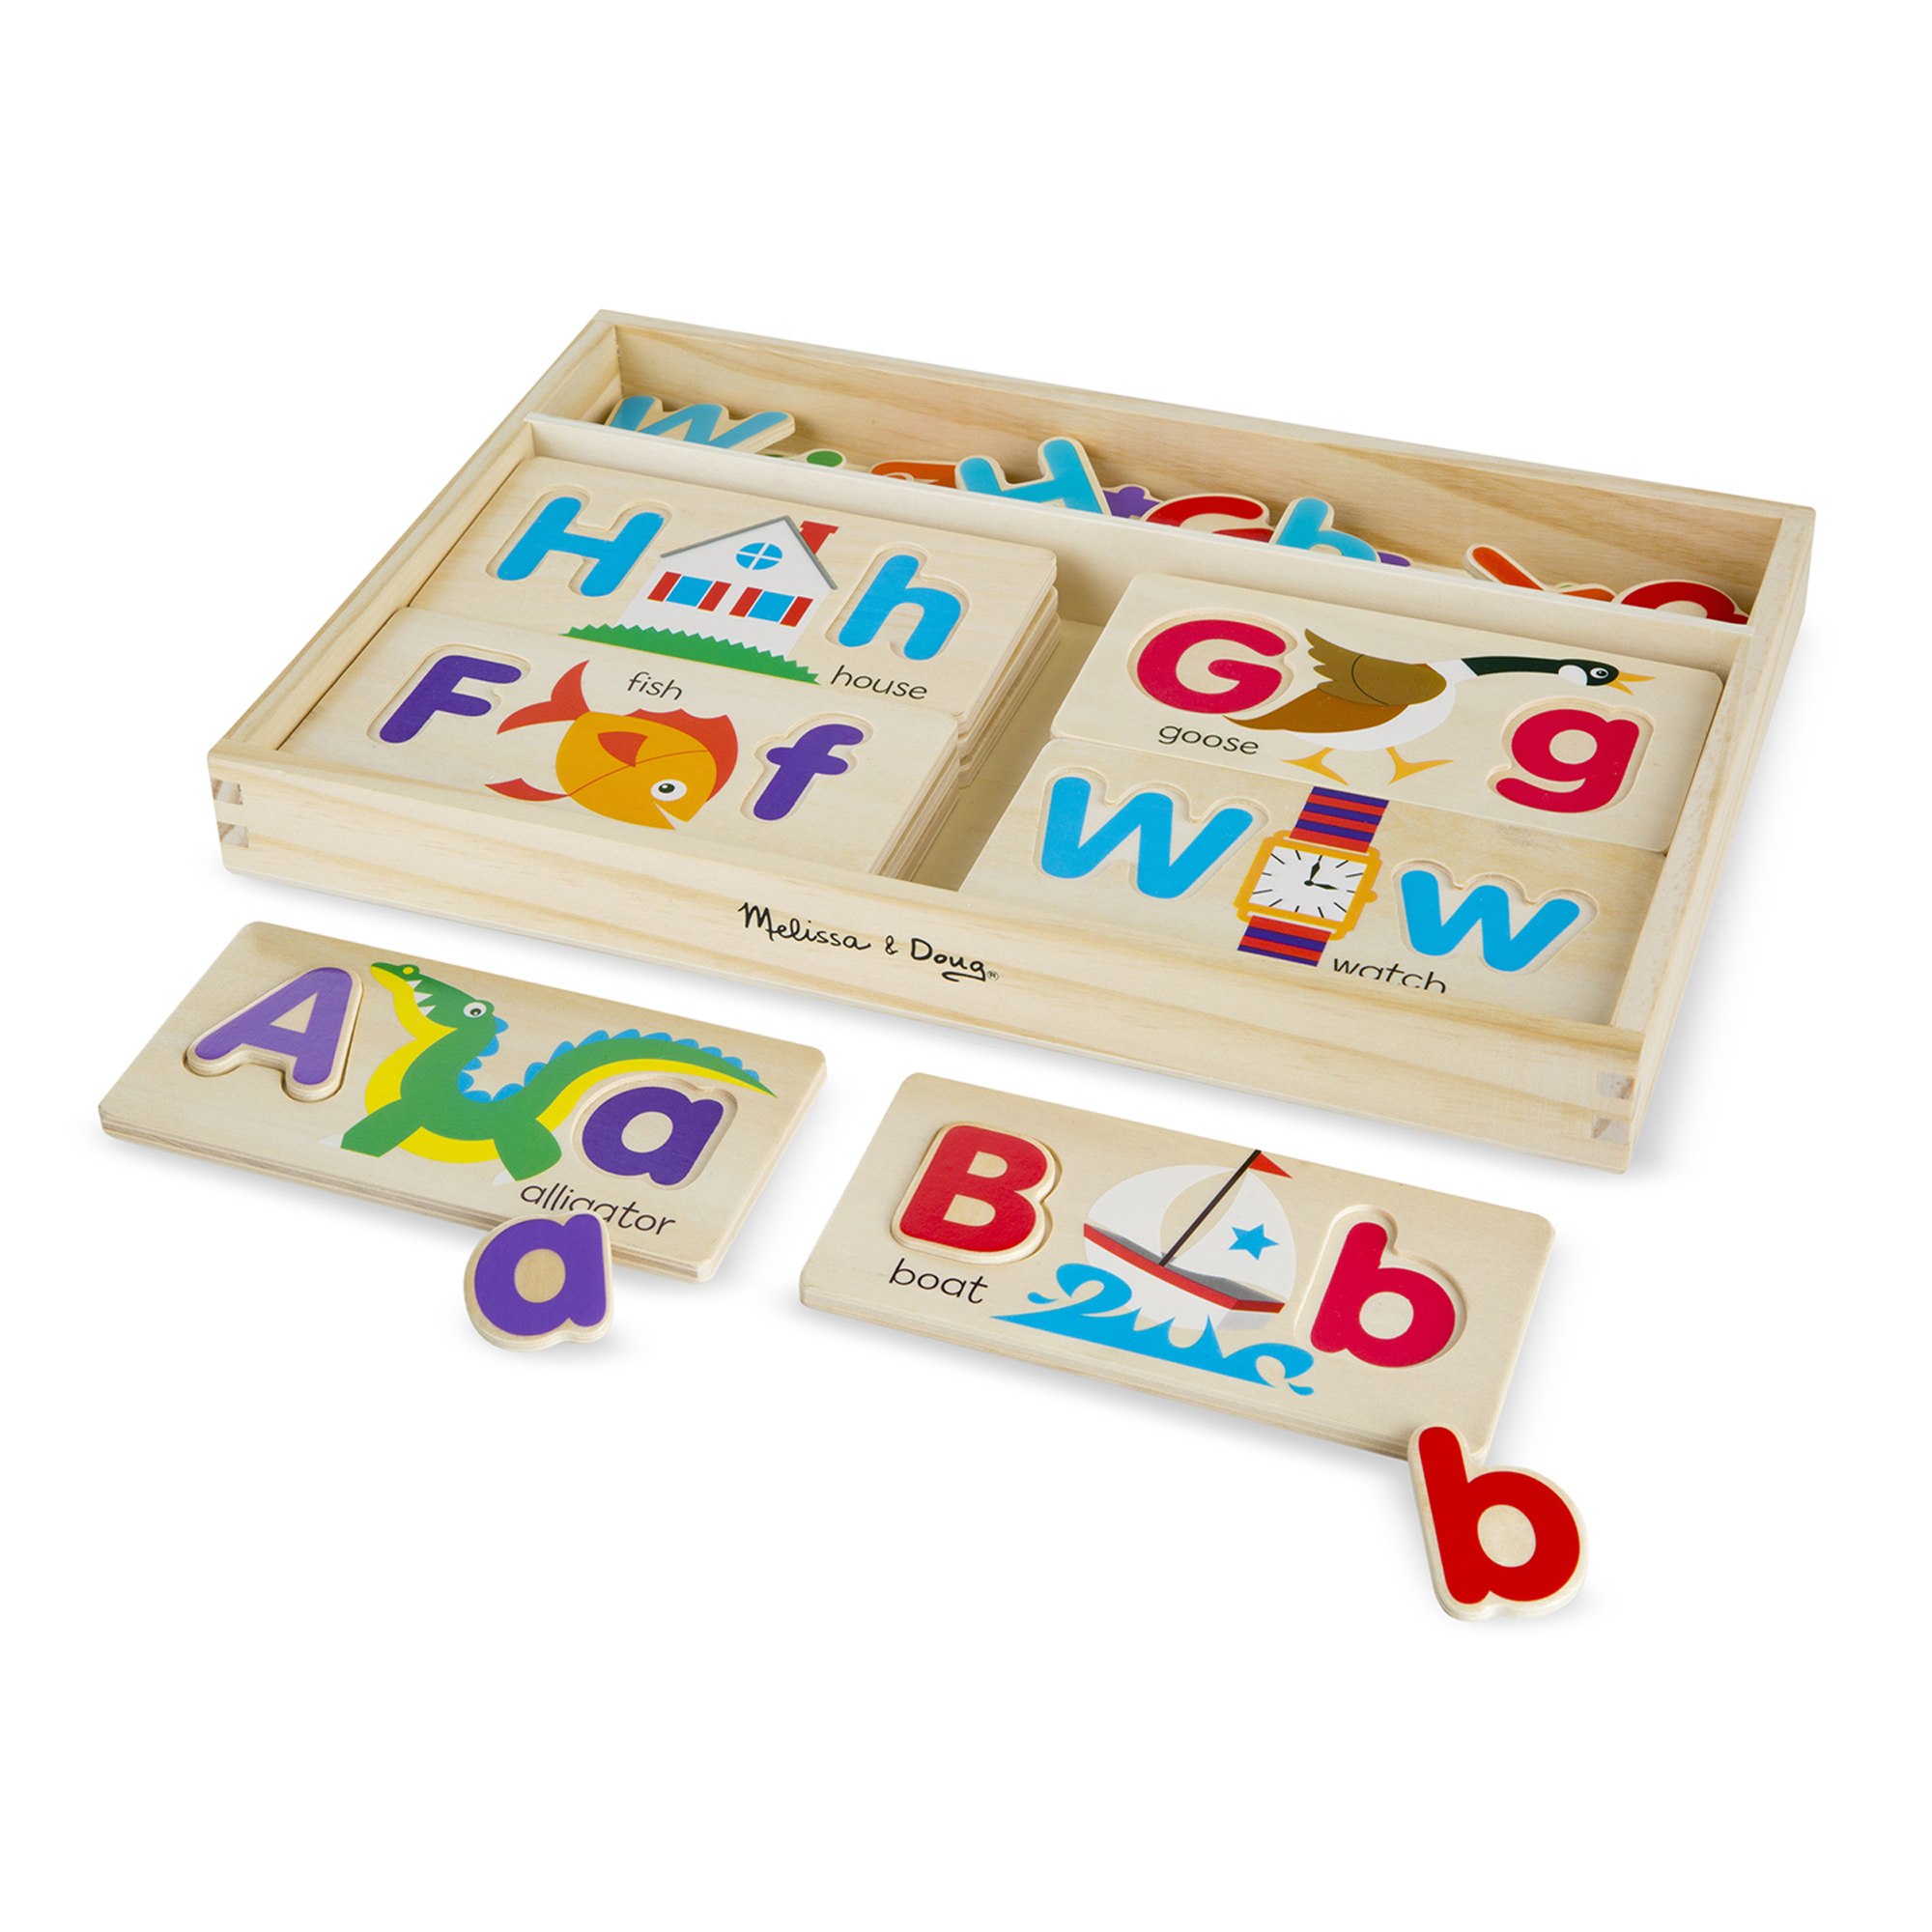 ABC, tell me what you see! These adorably illustrated boards are a great way to work on letter and word recognition; a child simply picks a board-the first letter of his or her name is always a good place to start-then fills in the uppercase and lowercase letters and identifies the picture. He or she can turn it over or take another board and do it all again. With so many letters (each letter in the alphabet in both uppercase and lowercase), children can find infinite ways to play!